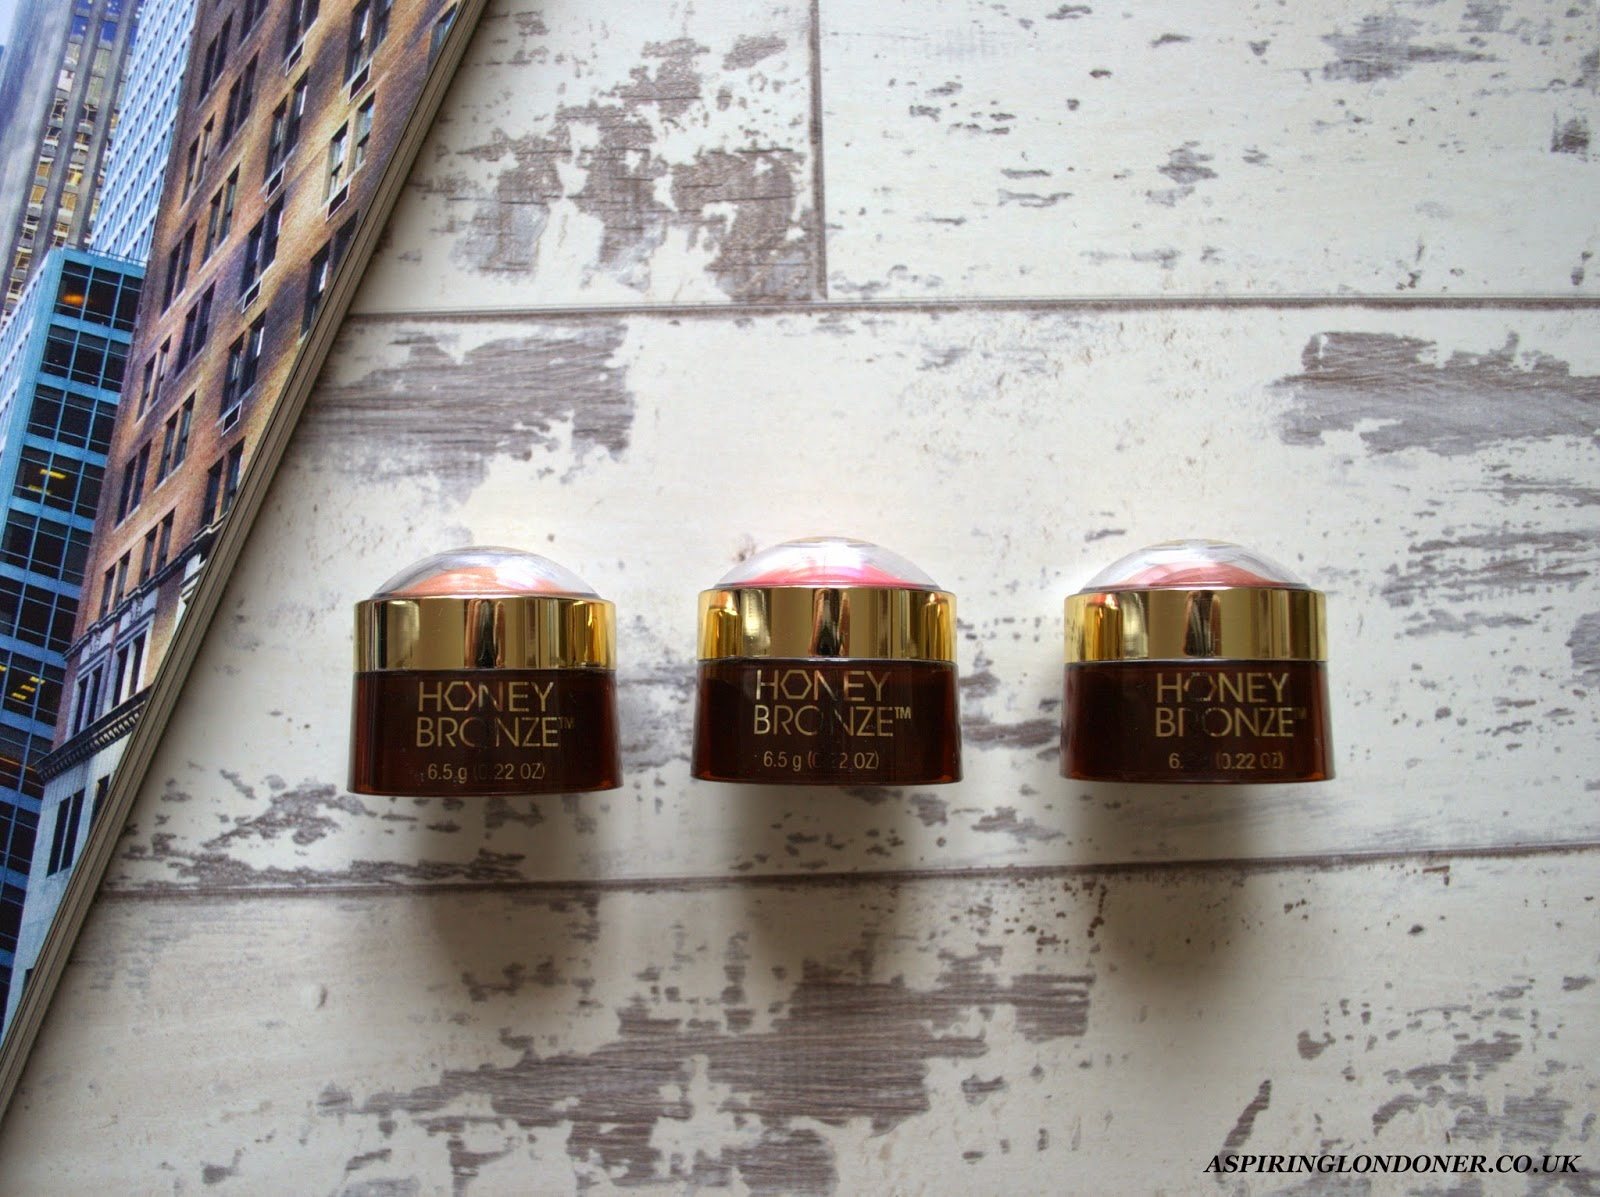 The Body Shop Honey Bronze Highlighting Dome Review - Aspiring Londoner